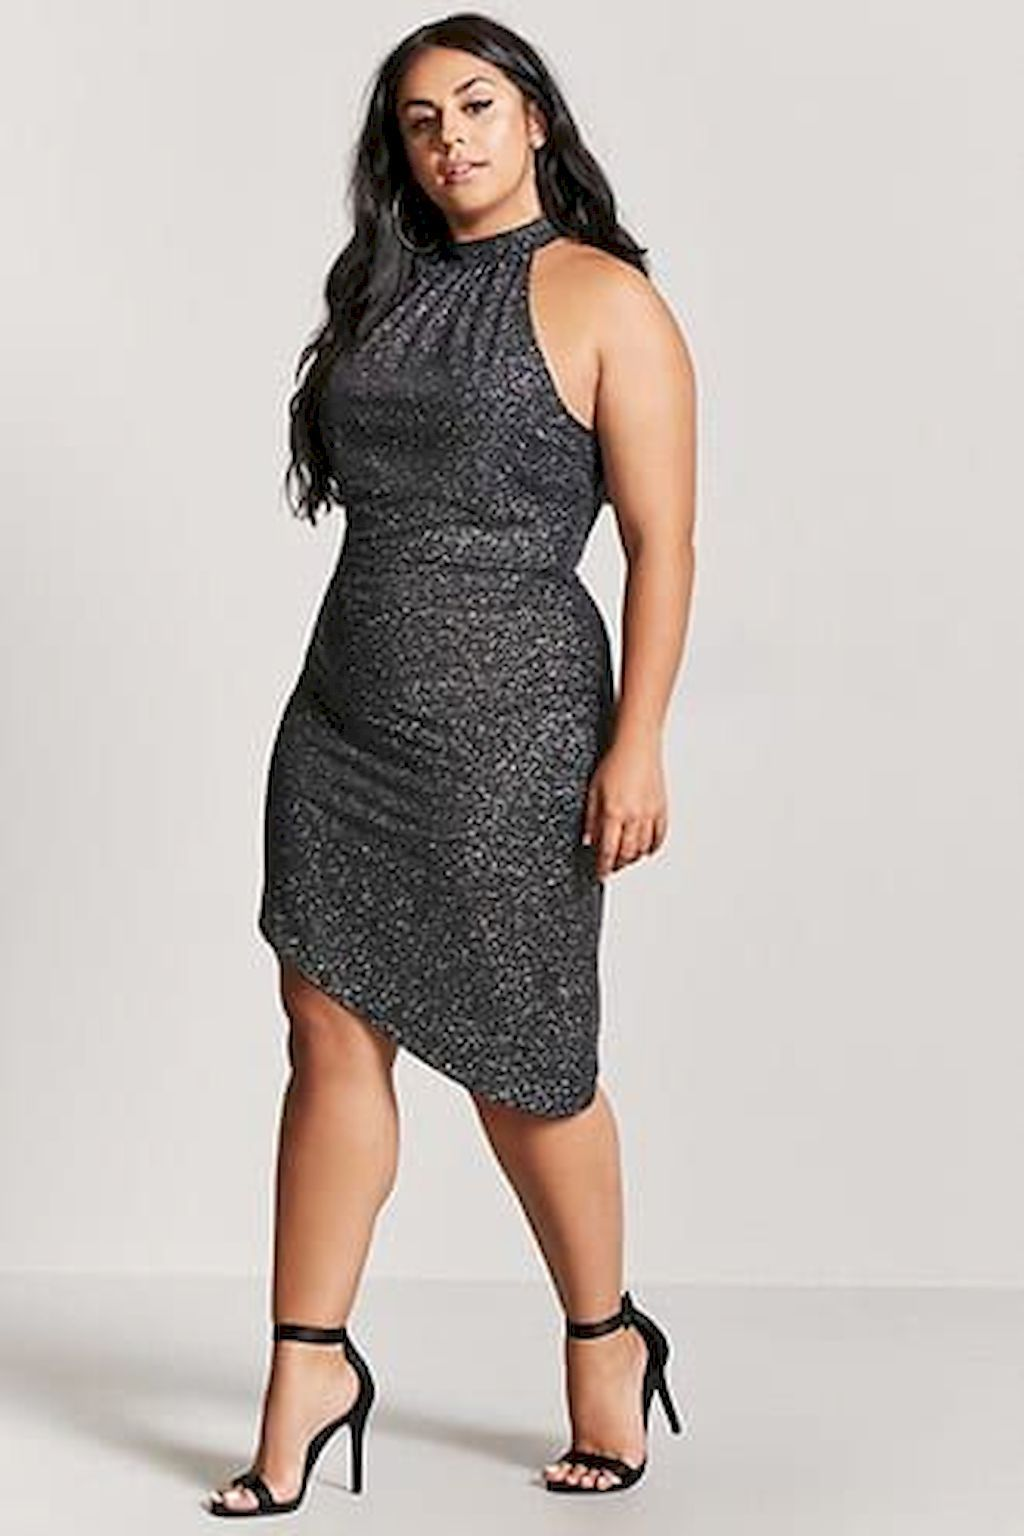 Plus Size Dresses For 21st Birthday